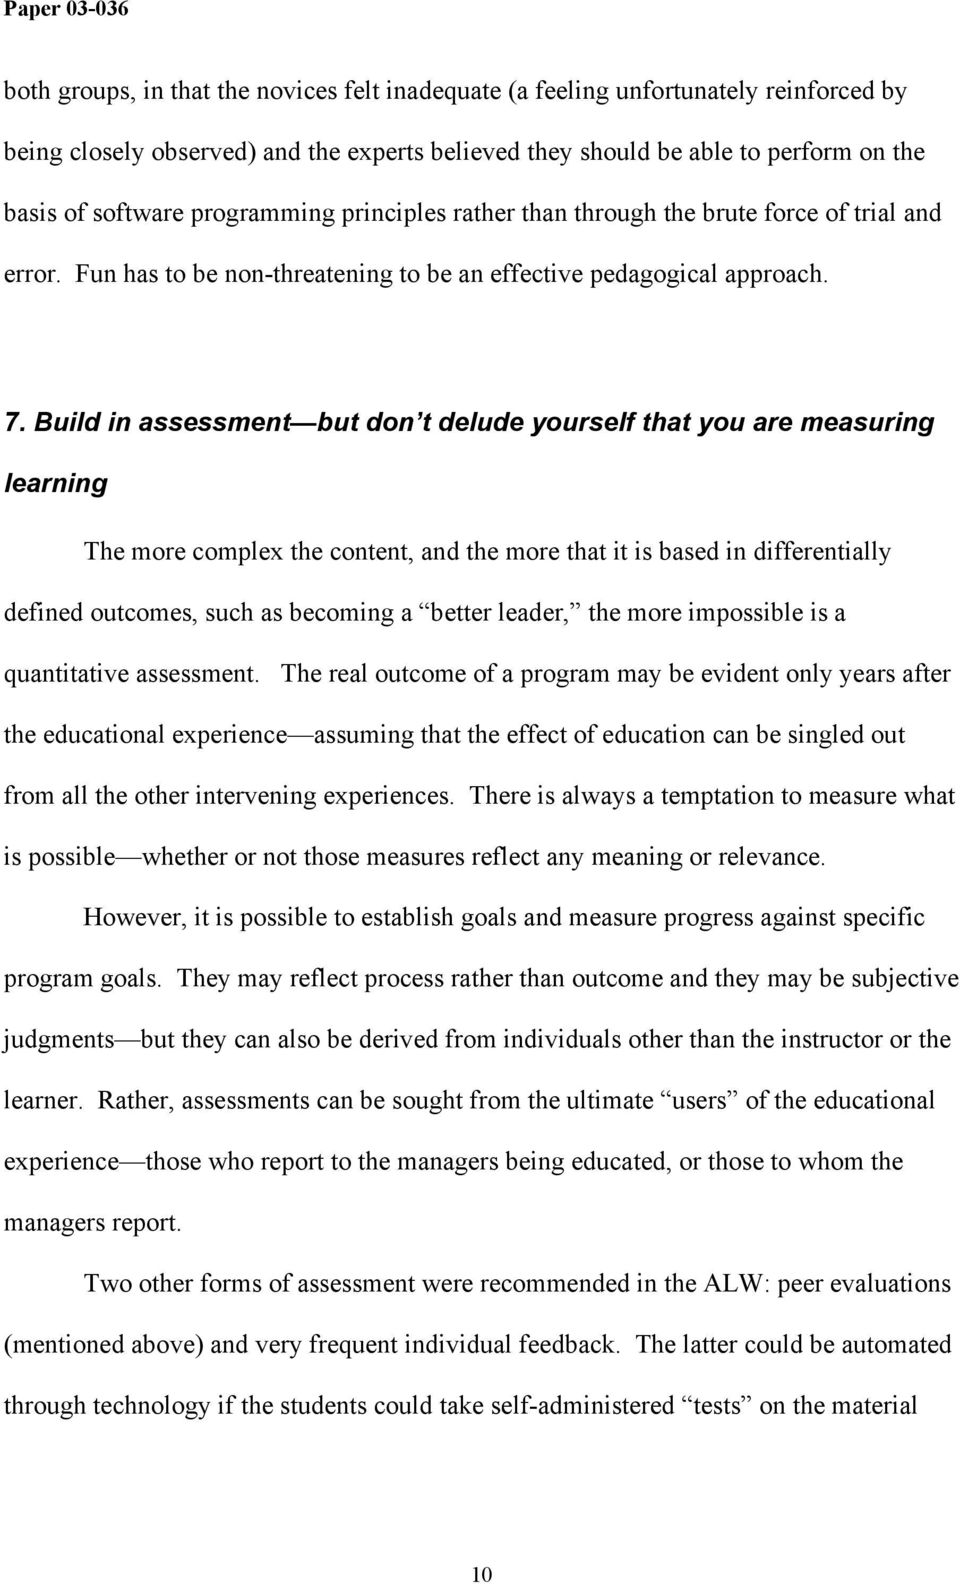 Build in assessment but don t delude yourself that you are measuring learning The more complex the content, and the more that it is based in differentially defined outcomes, such as becoming a better